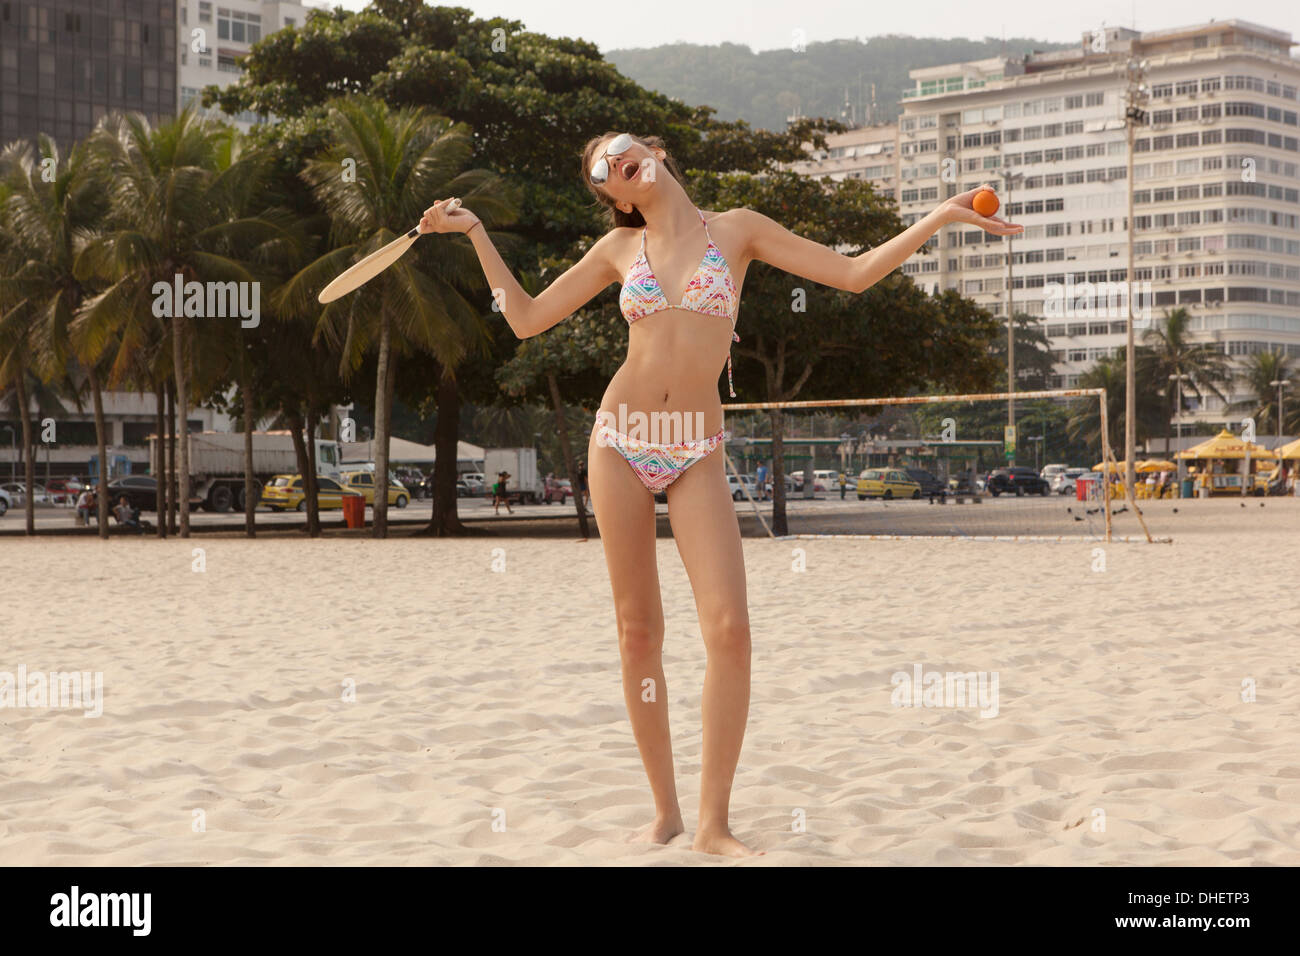 Woman standing with funny gesture on Copcacabana Beach, Rio de Janeiro, Brazil - Stock Image